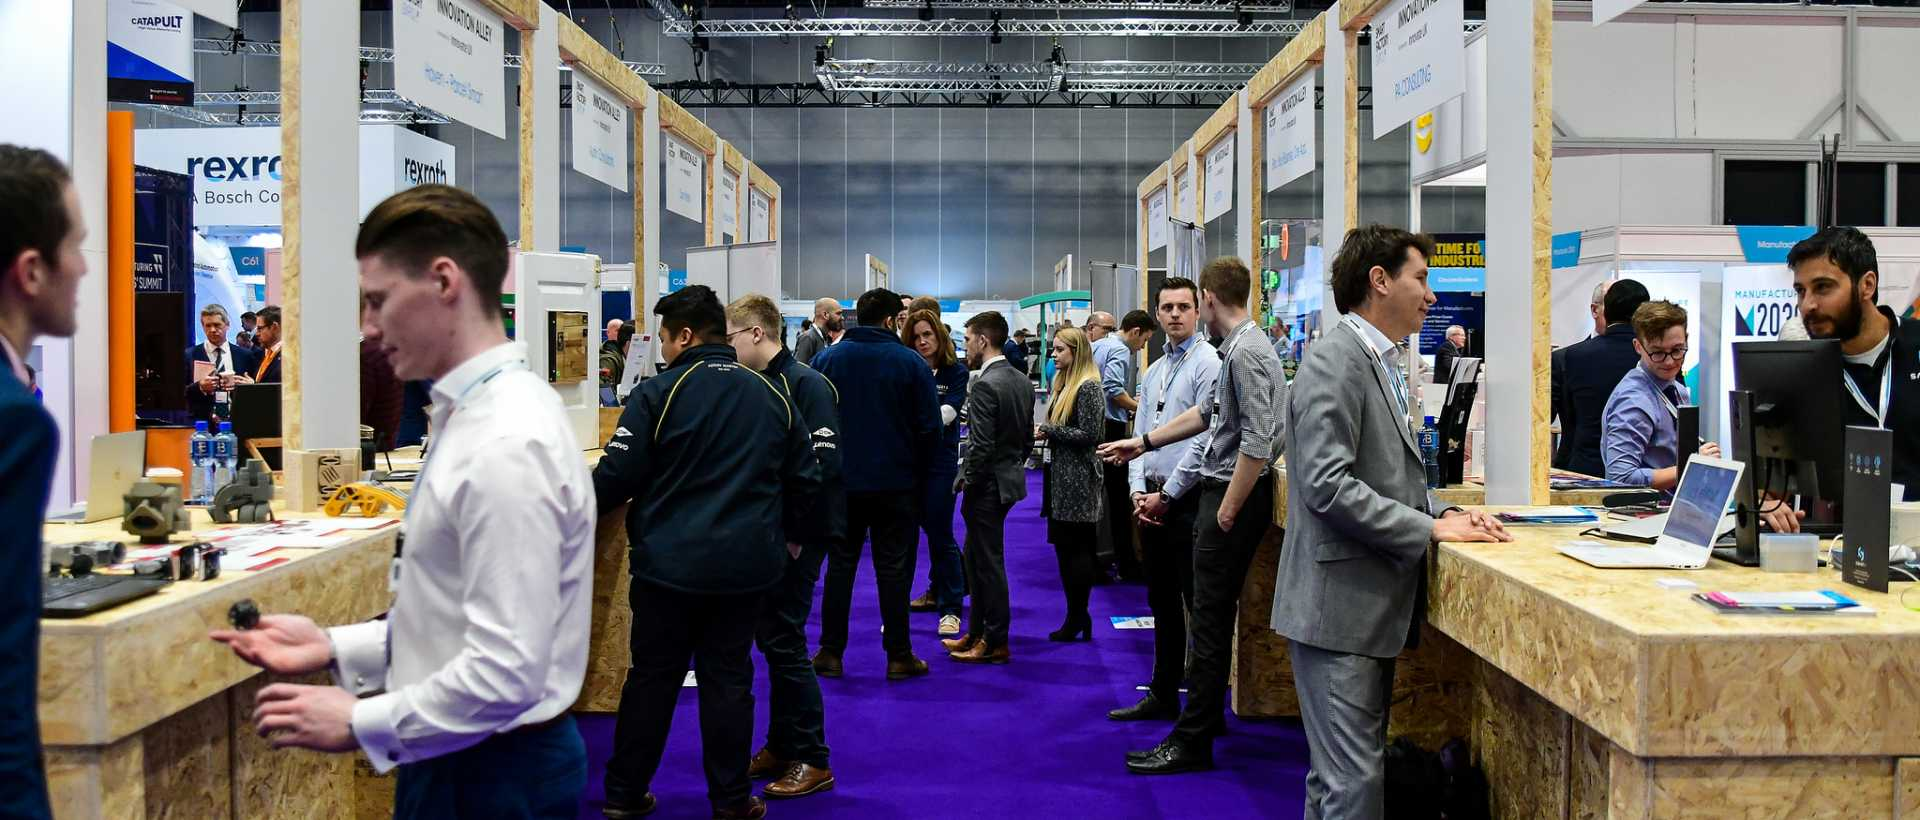 Innovation Alley at Smart Factory Expo 2018 - image courtesy of The Manufacturer.